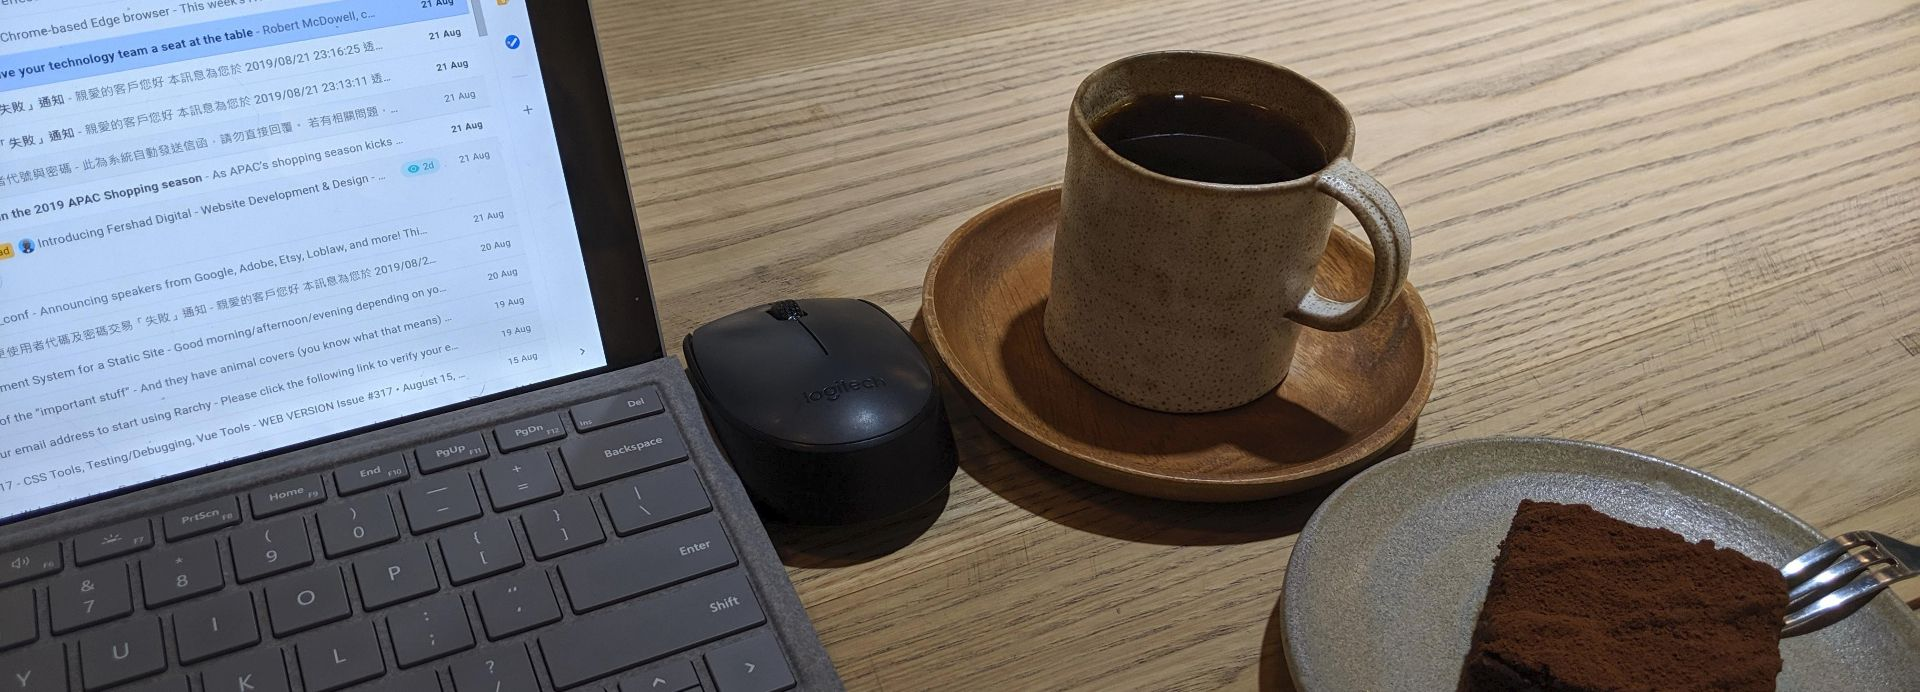 Cover image - Image of working remotely from a cafe